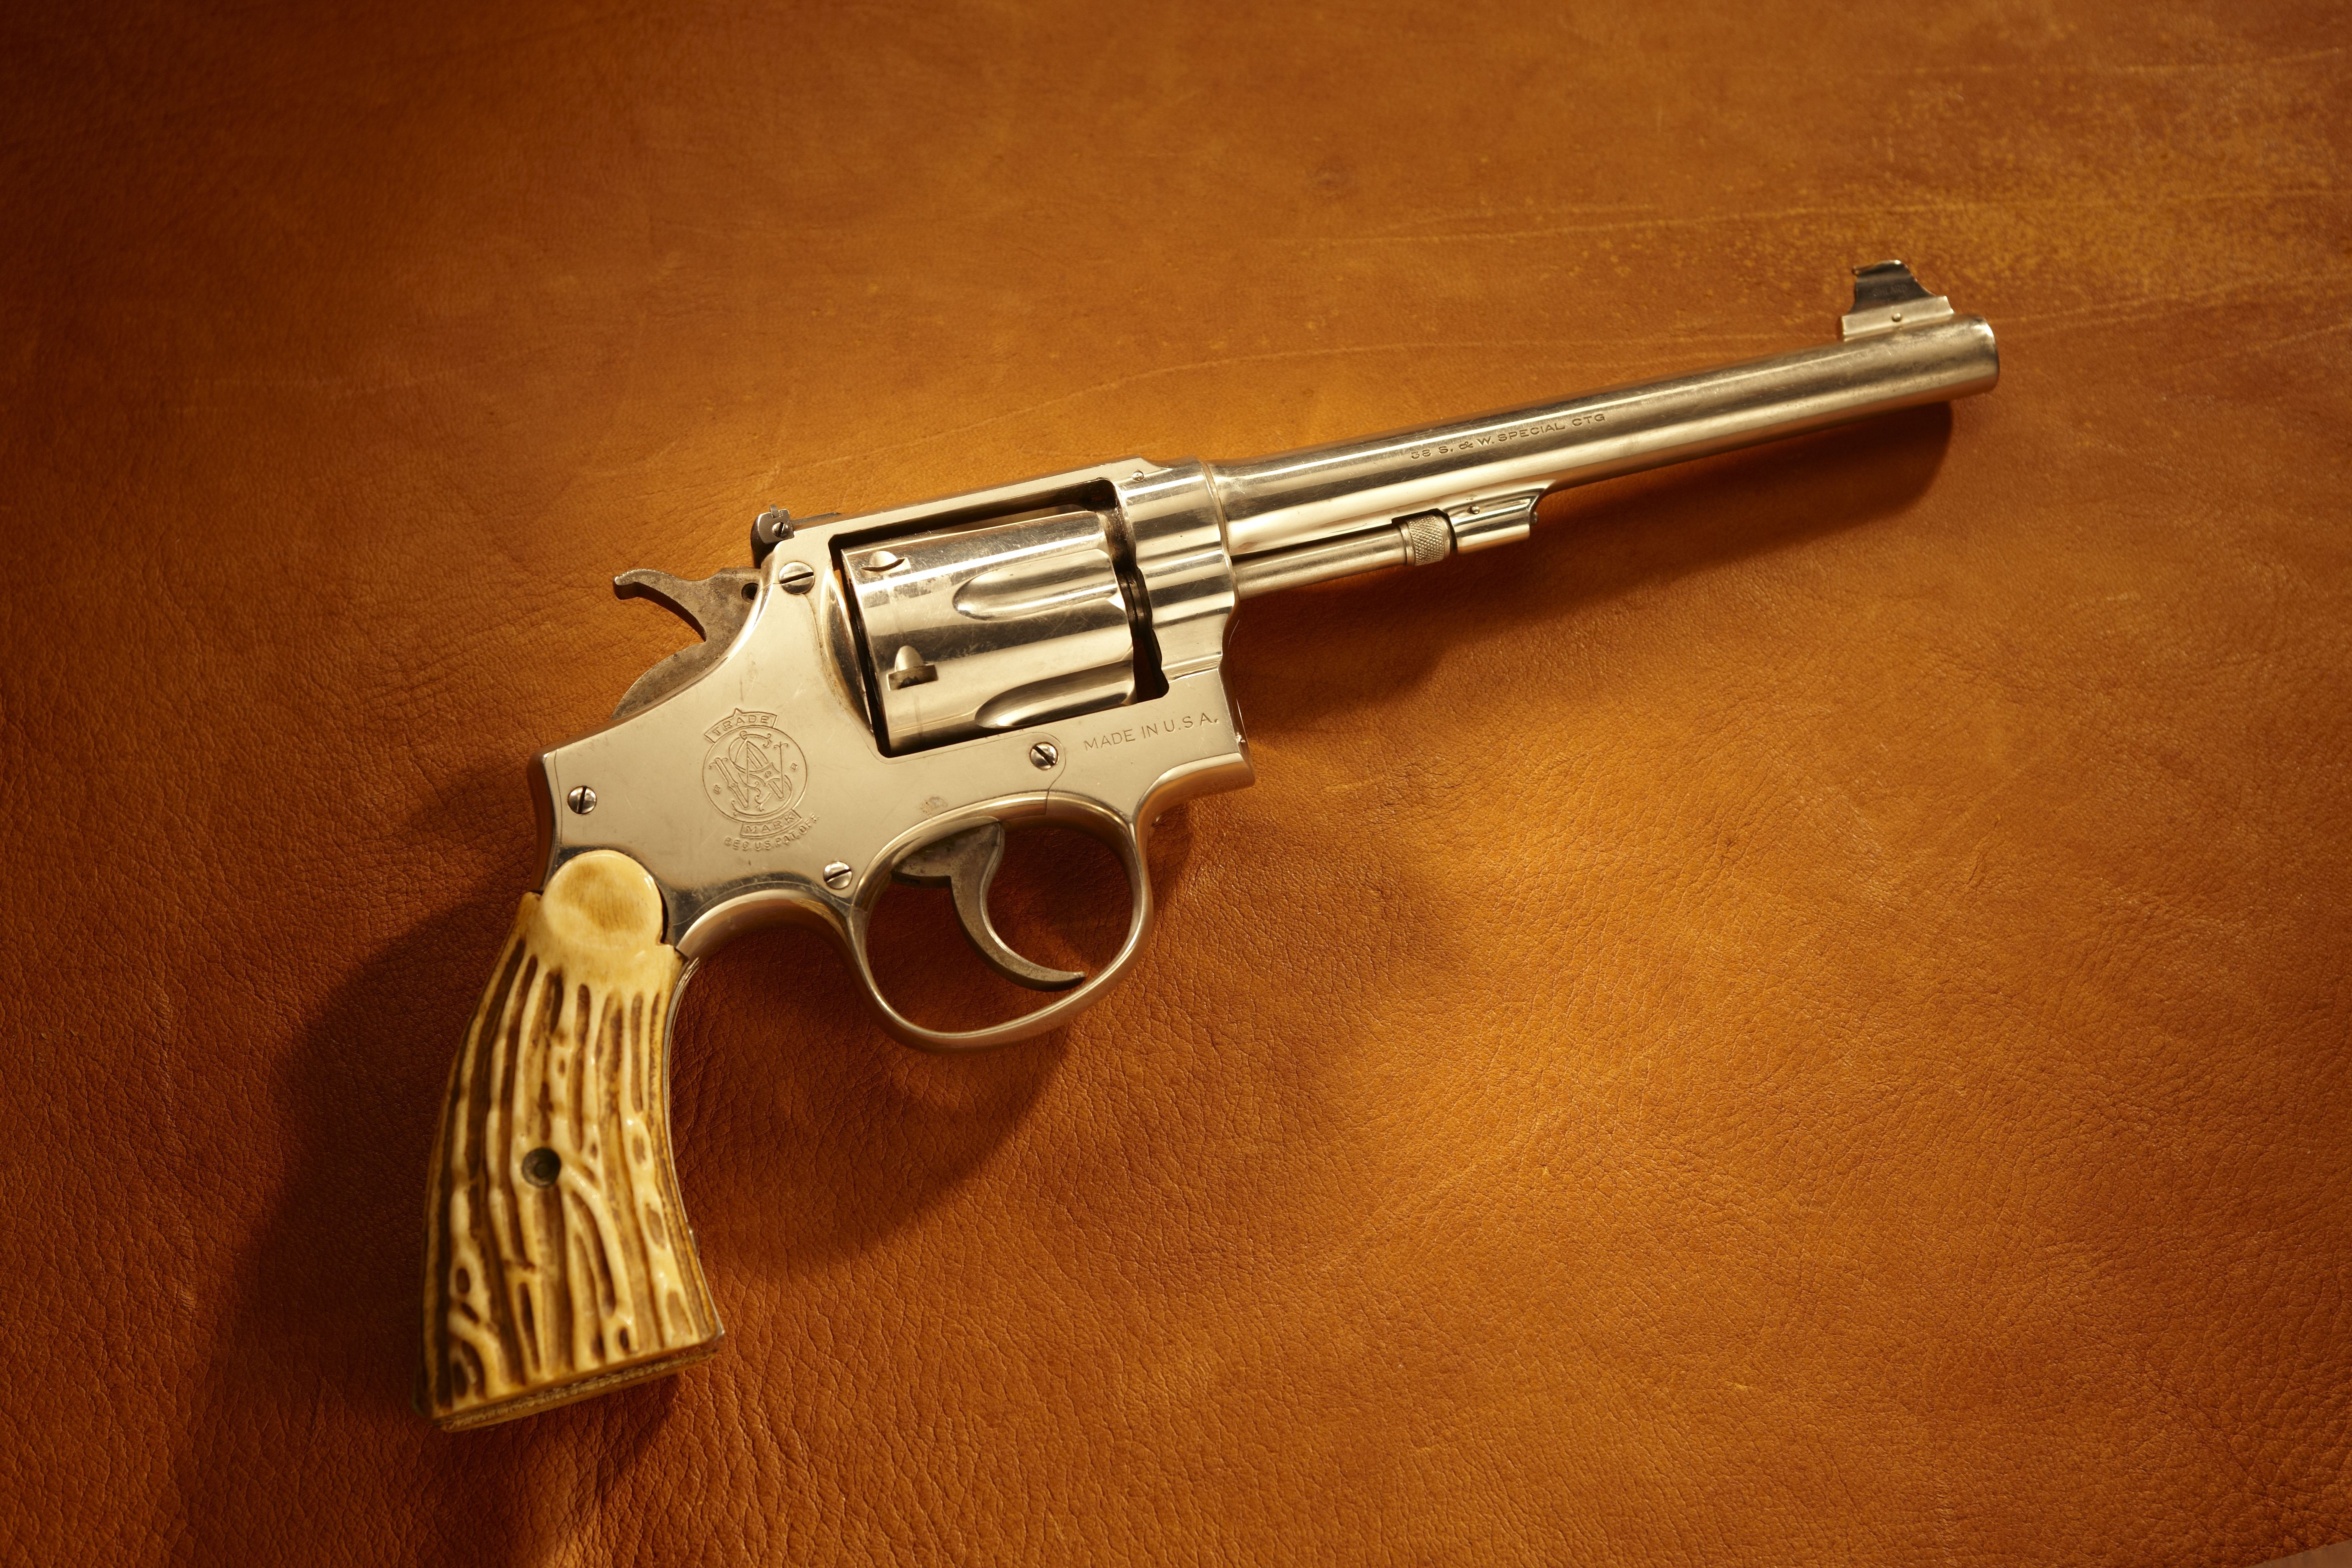 Exhibition Shooter Herb Parsons' Smith & Wesson Revolvers (2 of 2)